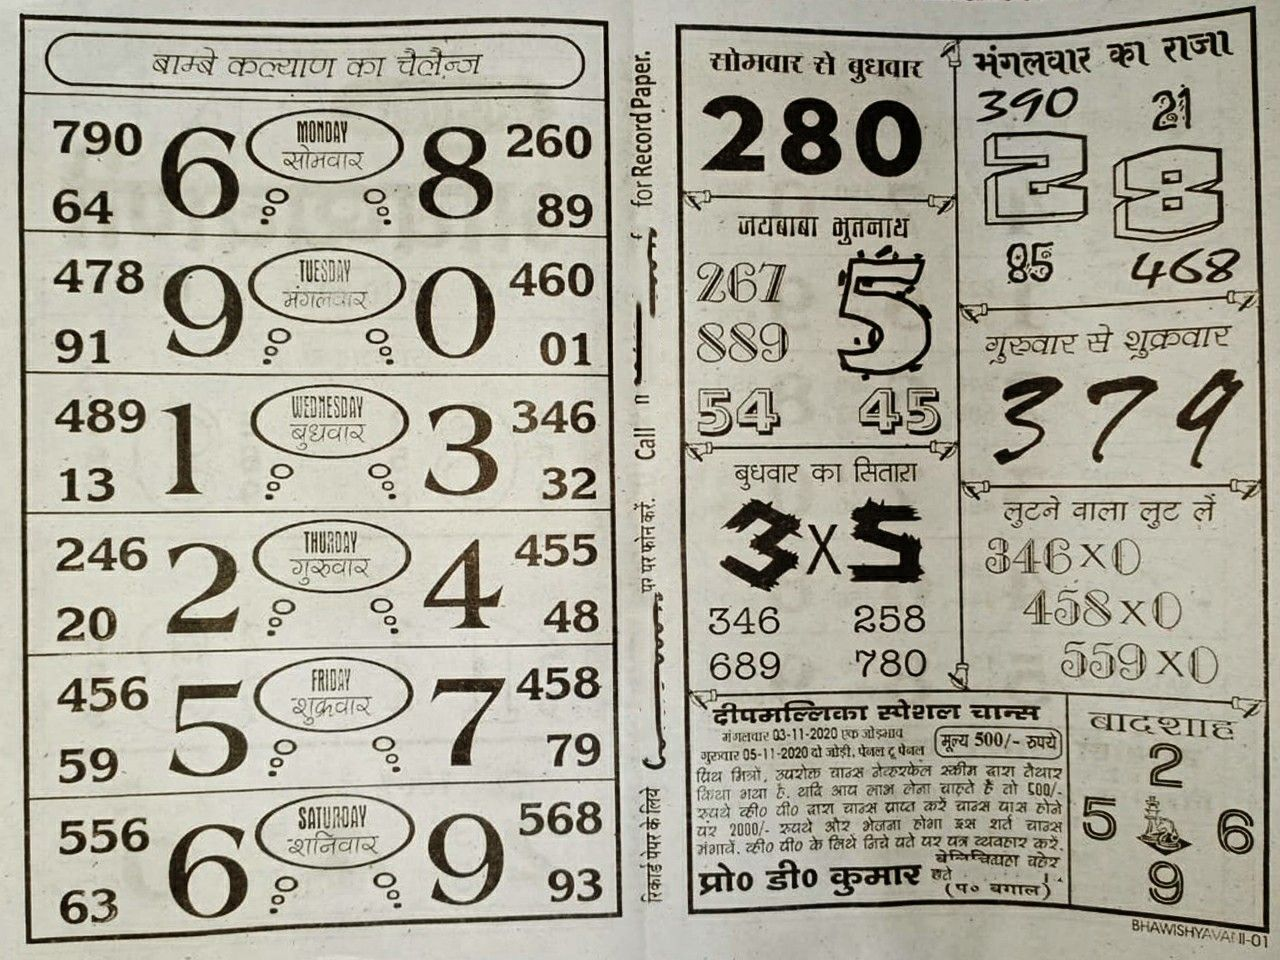 Pin By Kapil Matka On Satta Matka In 2021 Downloading Data Kalyan Tips Daily Lottery Numbers Touch math single digit addition